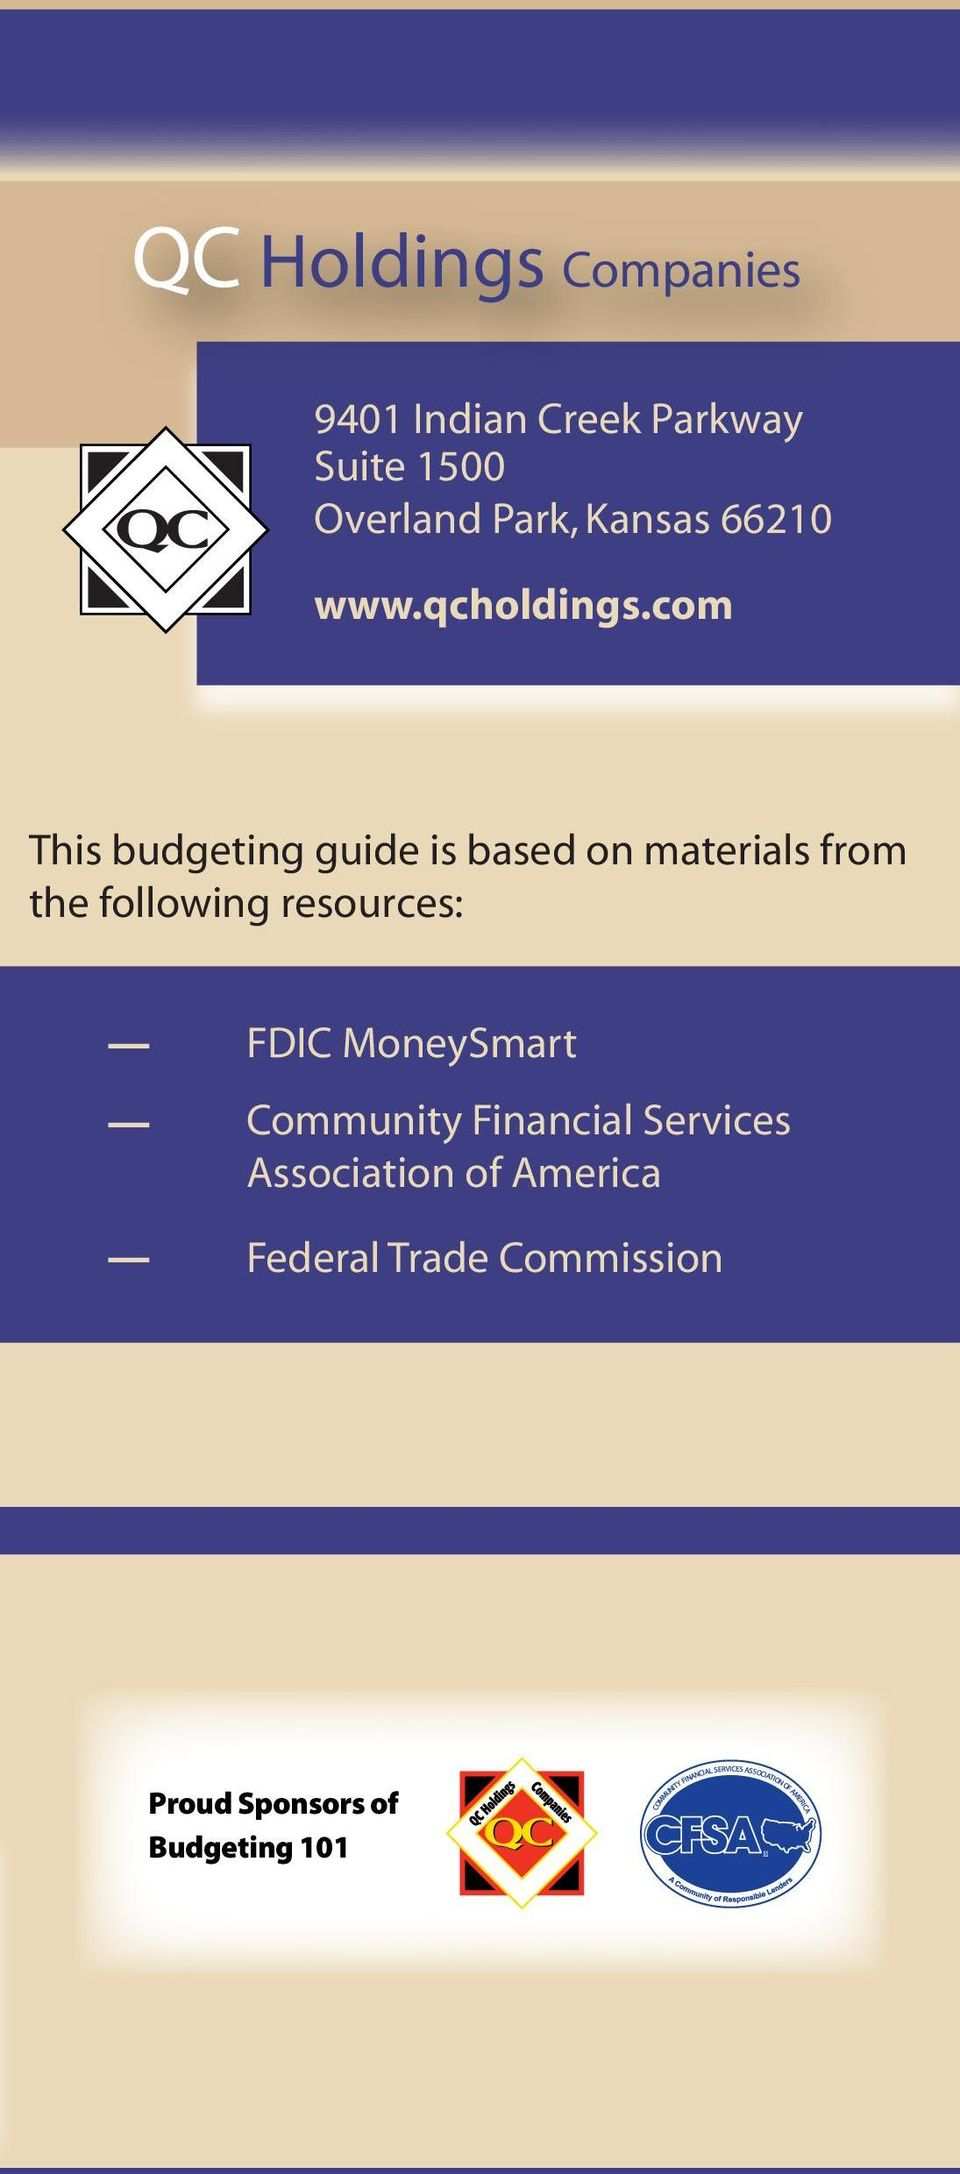 com This budgeting guide is based on materials from the following